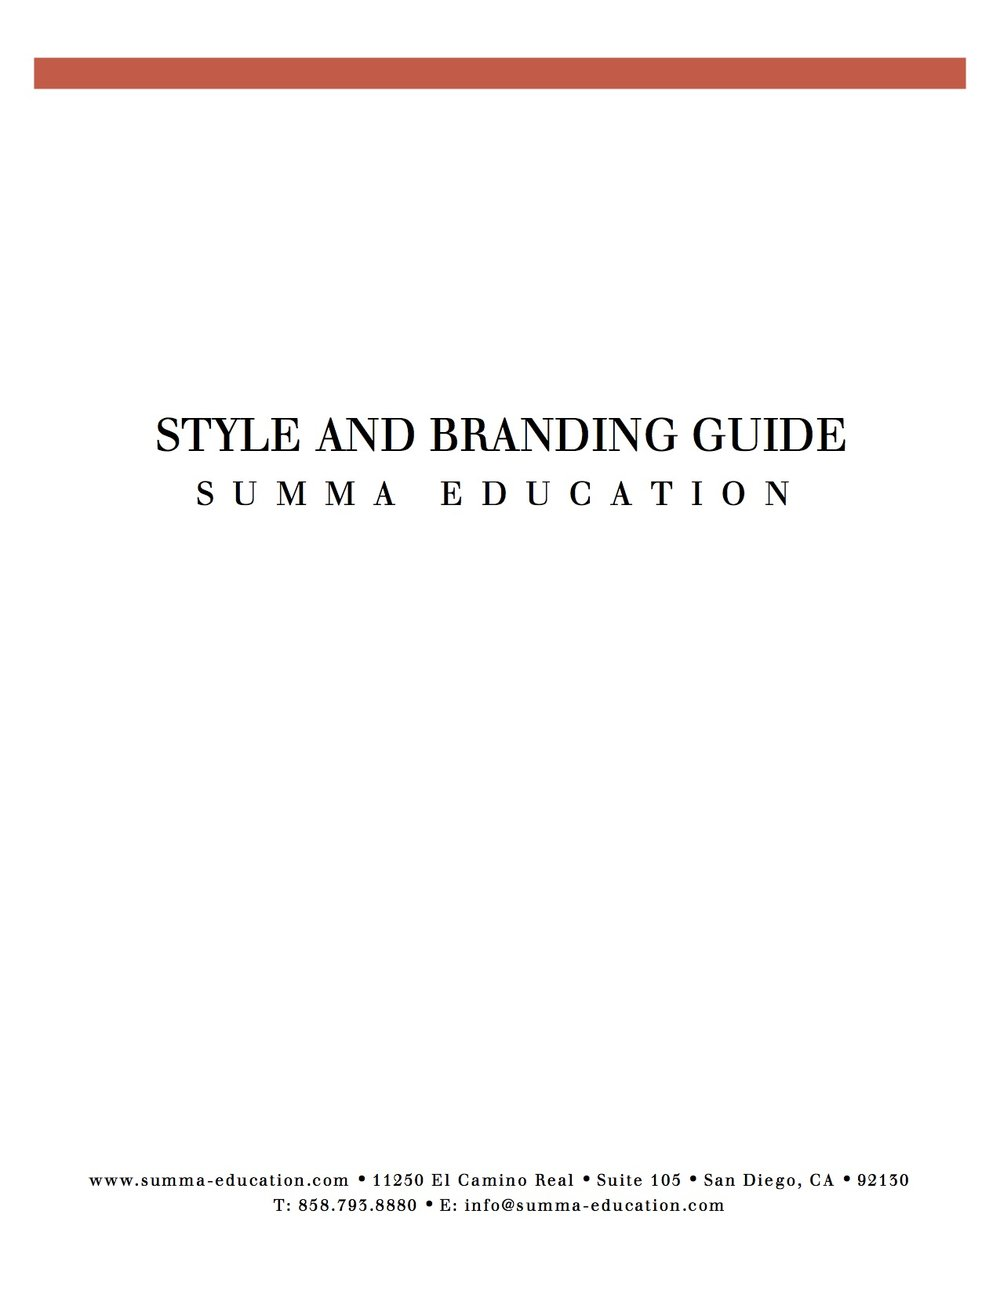 Style and Branding Guide